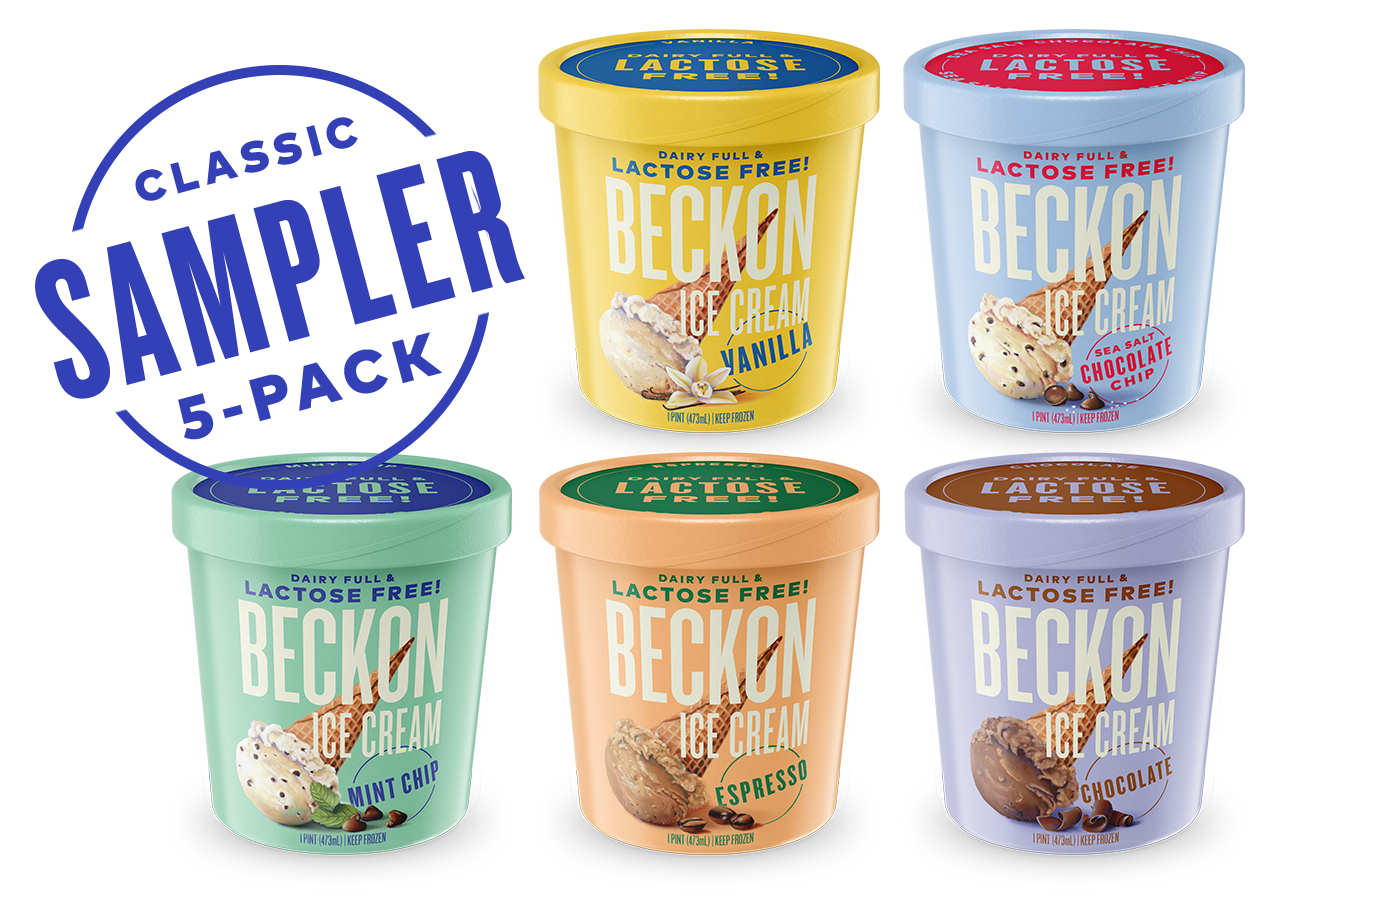 Beckon Ice Cream. Lactose Free Ice Cream. Real Ice Cream. Shop Pints. Classic Sampler Pack. Boston, Massachusetts.